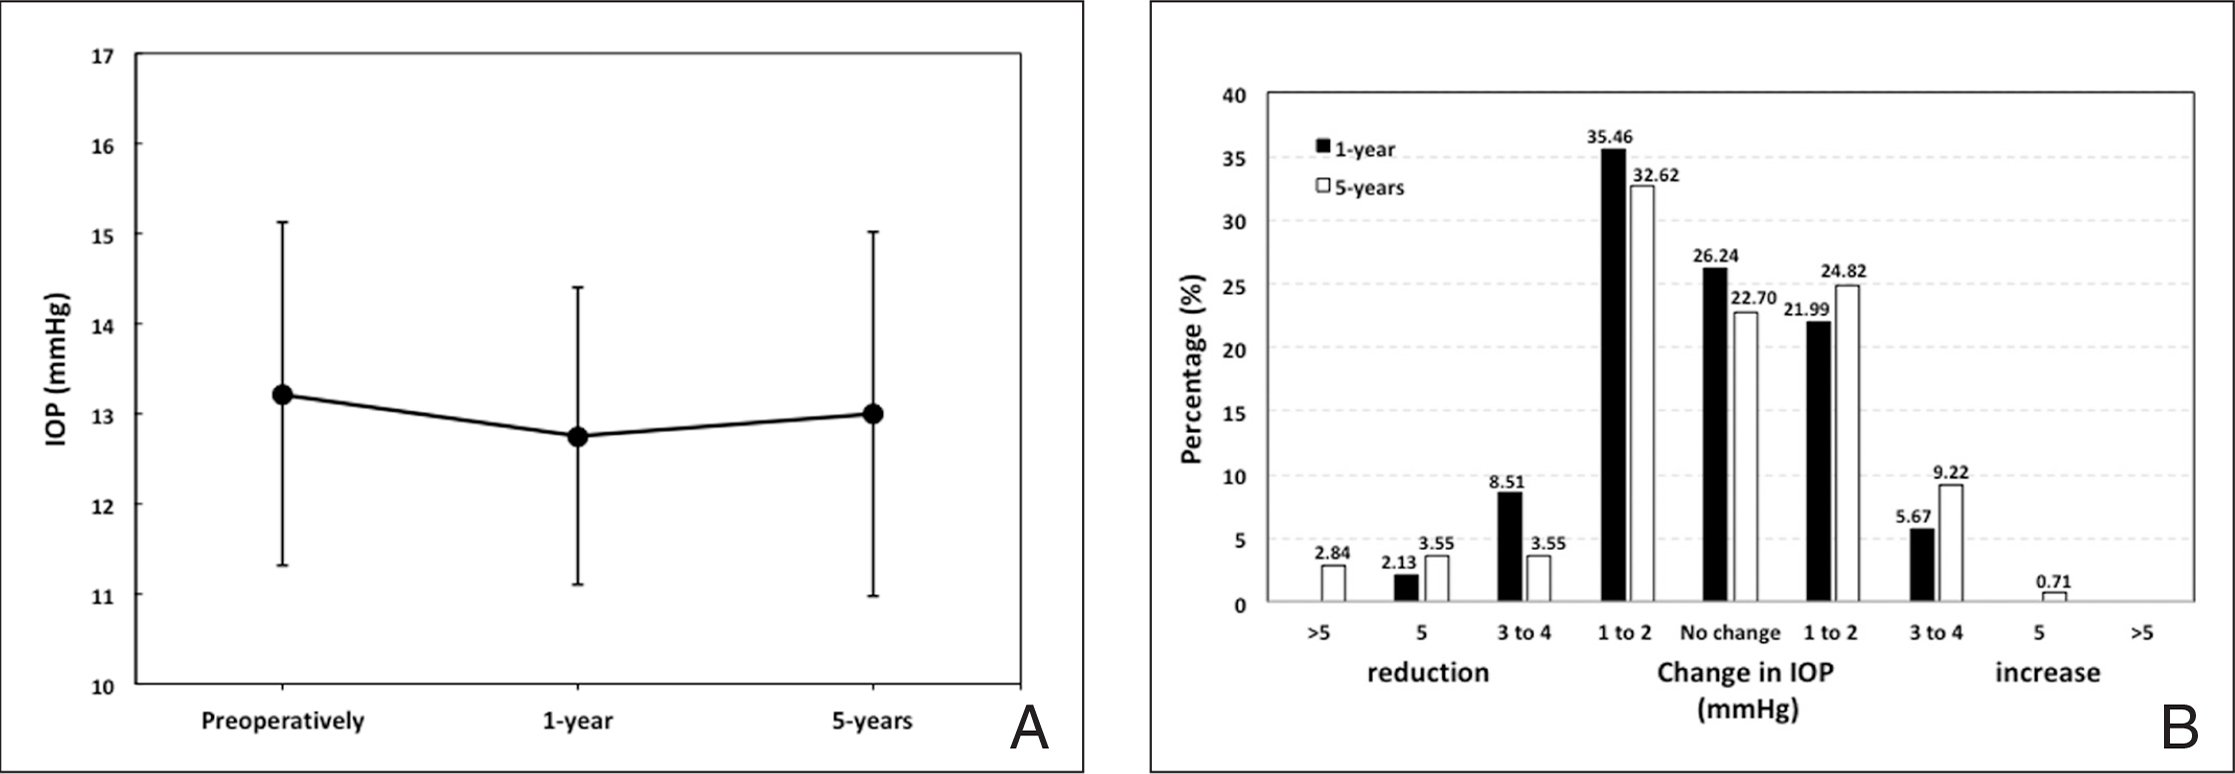 (A) Evolution of the mean intraocular pressure (IOP) (mm Hg) for the whole follow-up period. Errors bars represent the standard deviation. (B) Postoperative changes in IOP (mm Hg) at 1 and 5 years postoperatively.